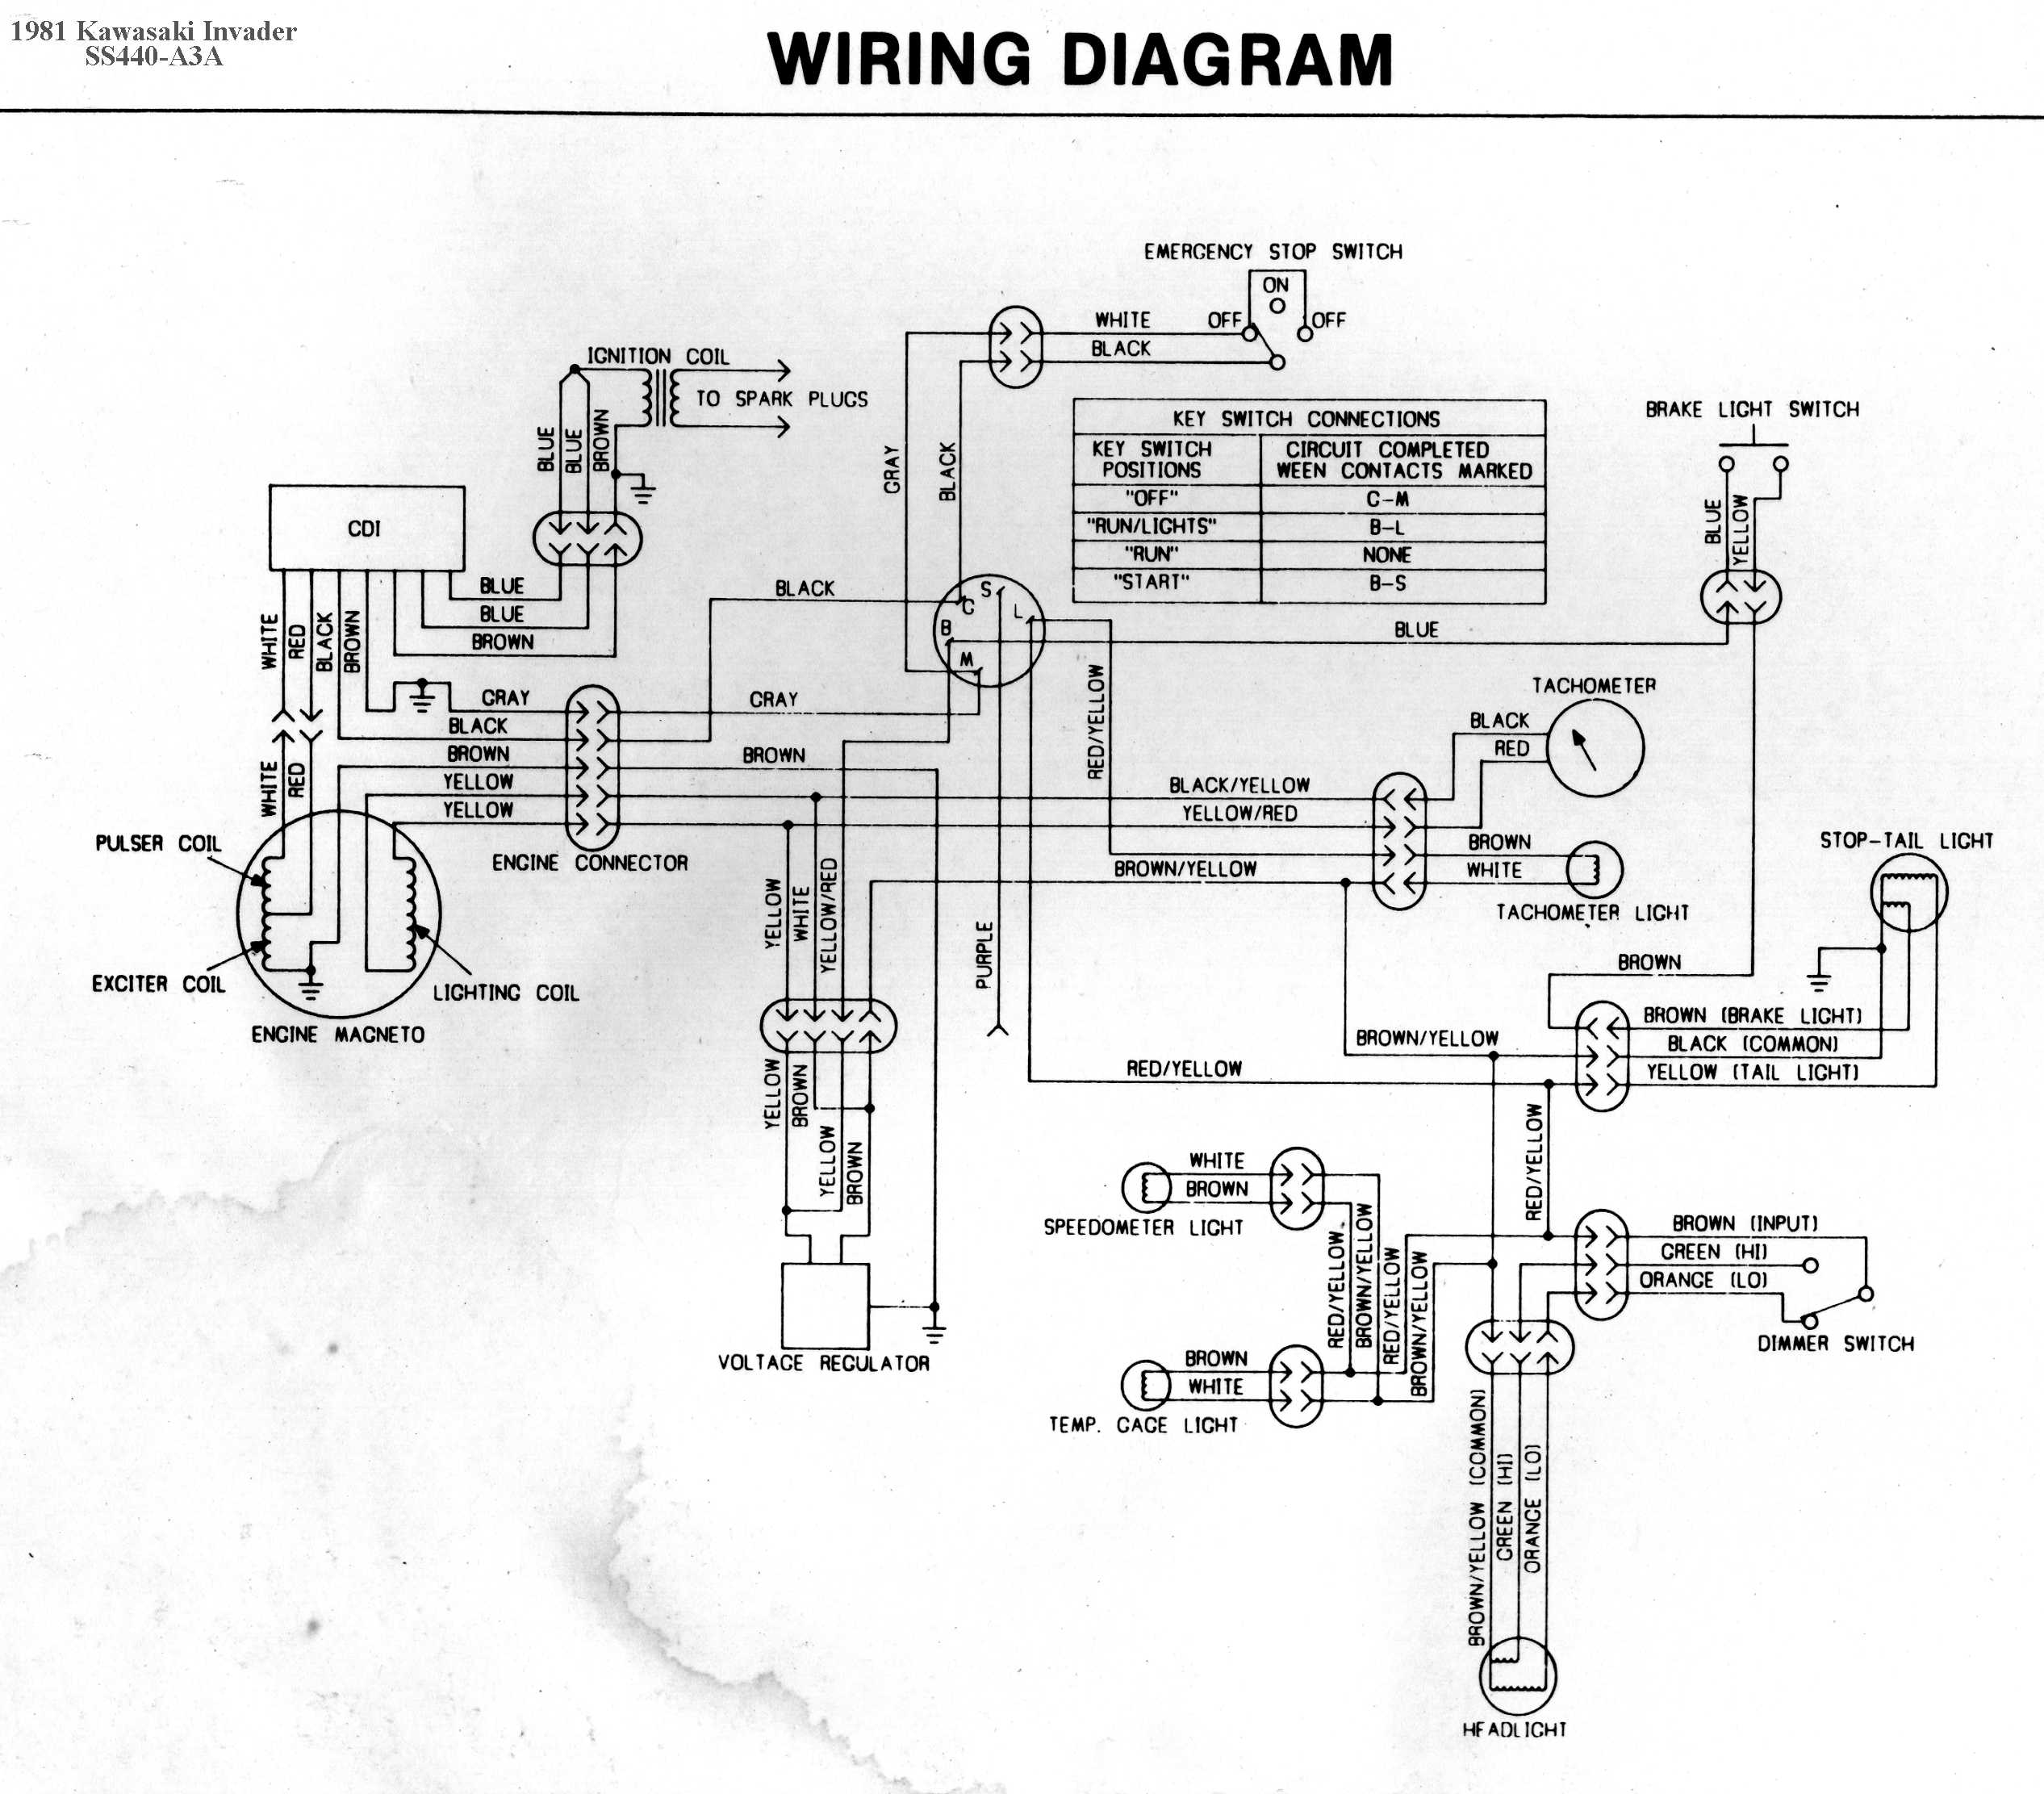 Polaris 440 Wiring Diagram - Wiring Diagram •